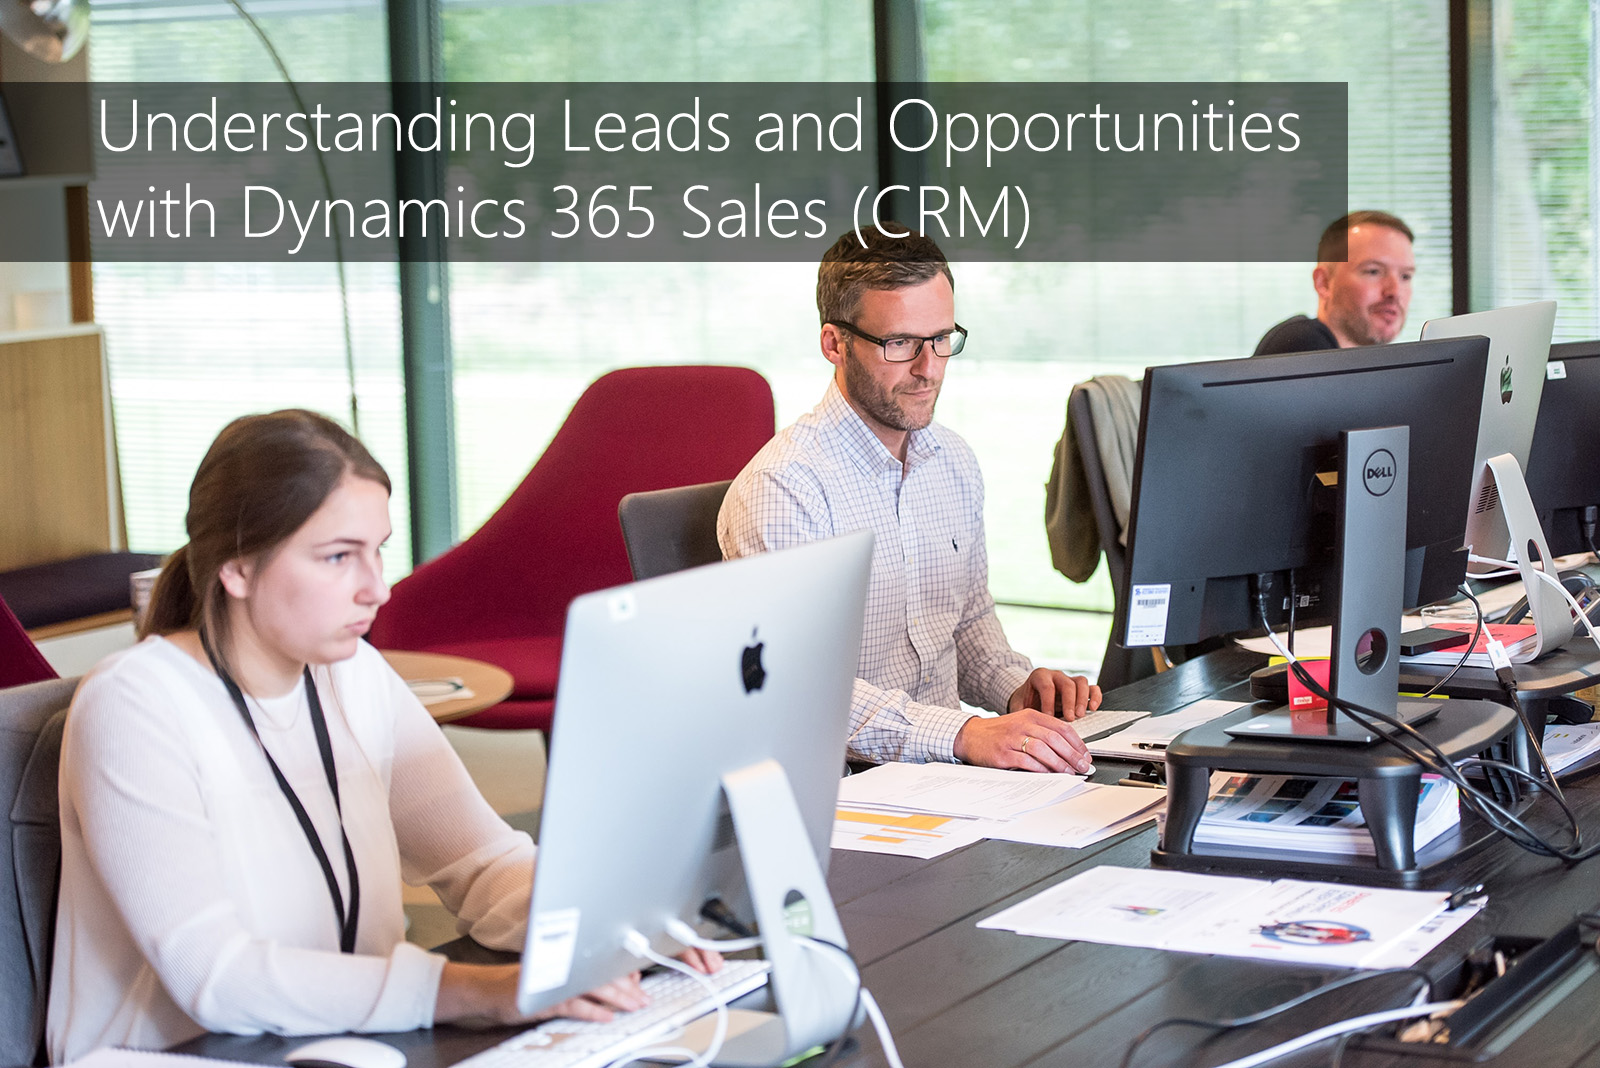 TMC-blog-understanding-leads-and-opportunities-with-dynamics-365-sales-crm